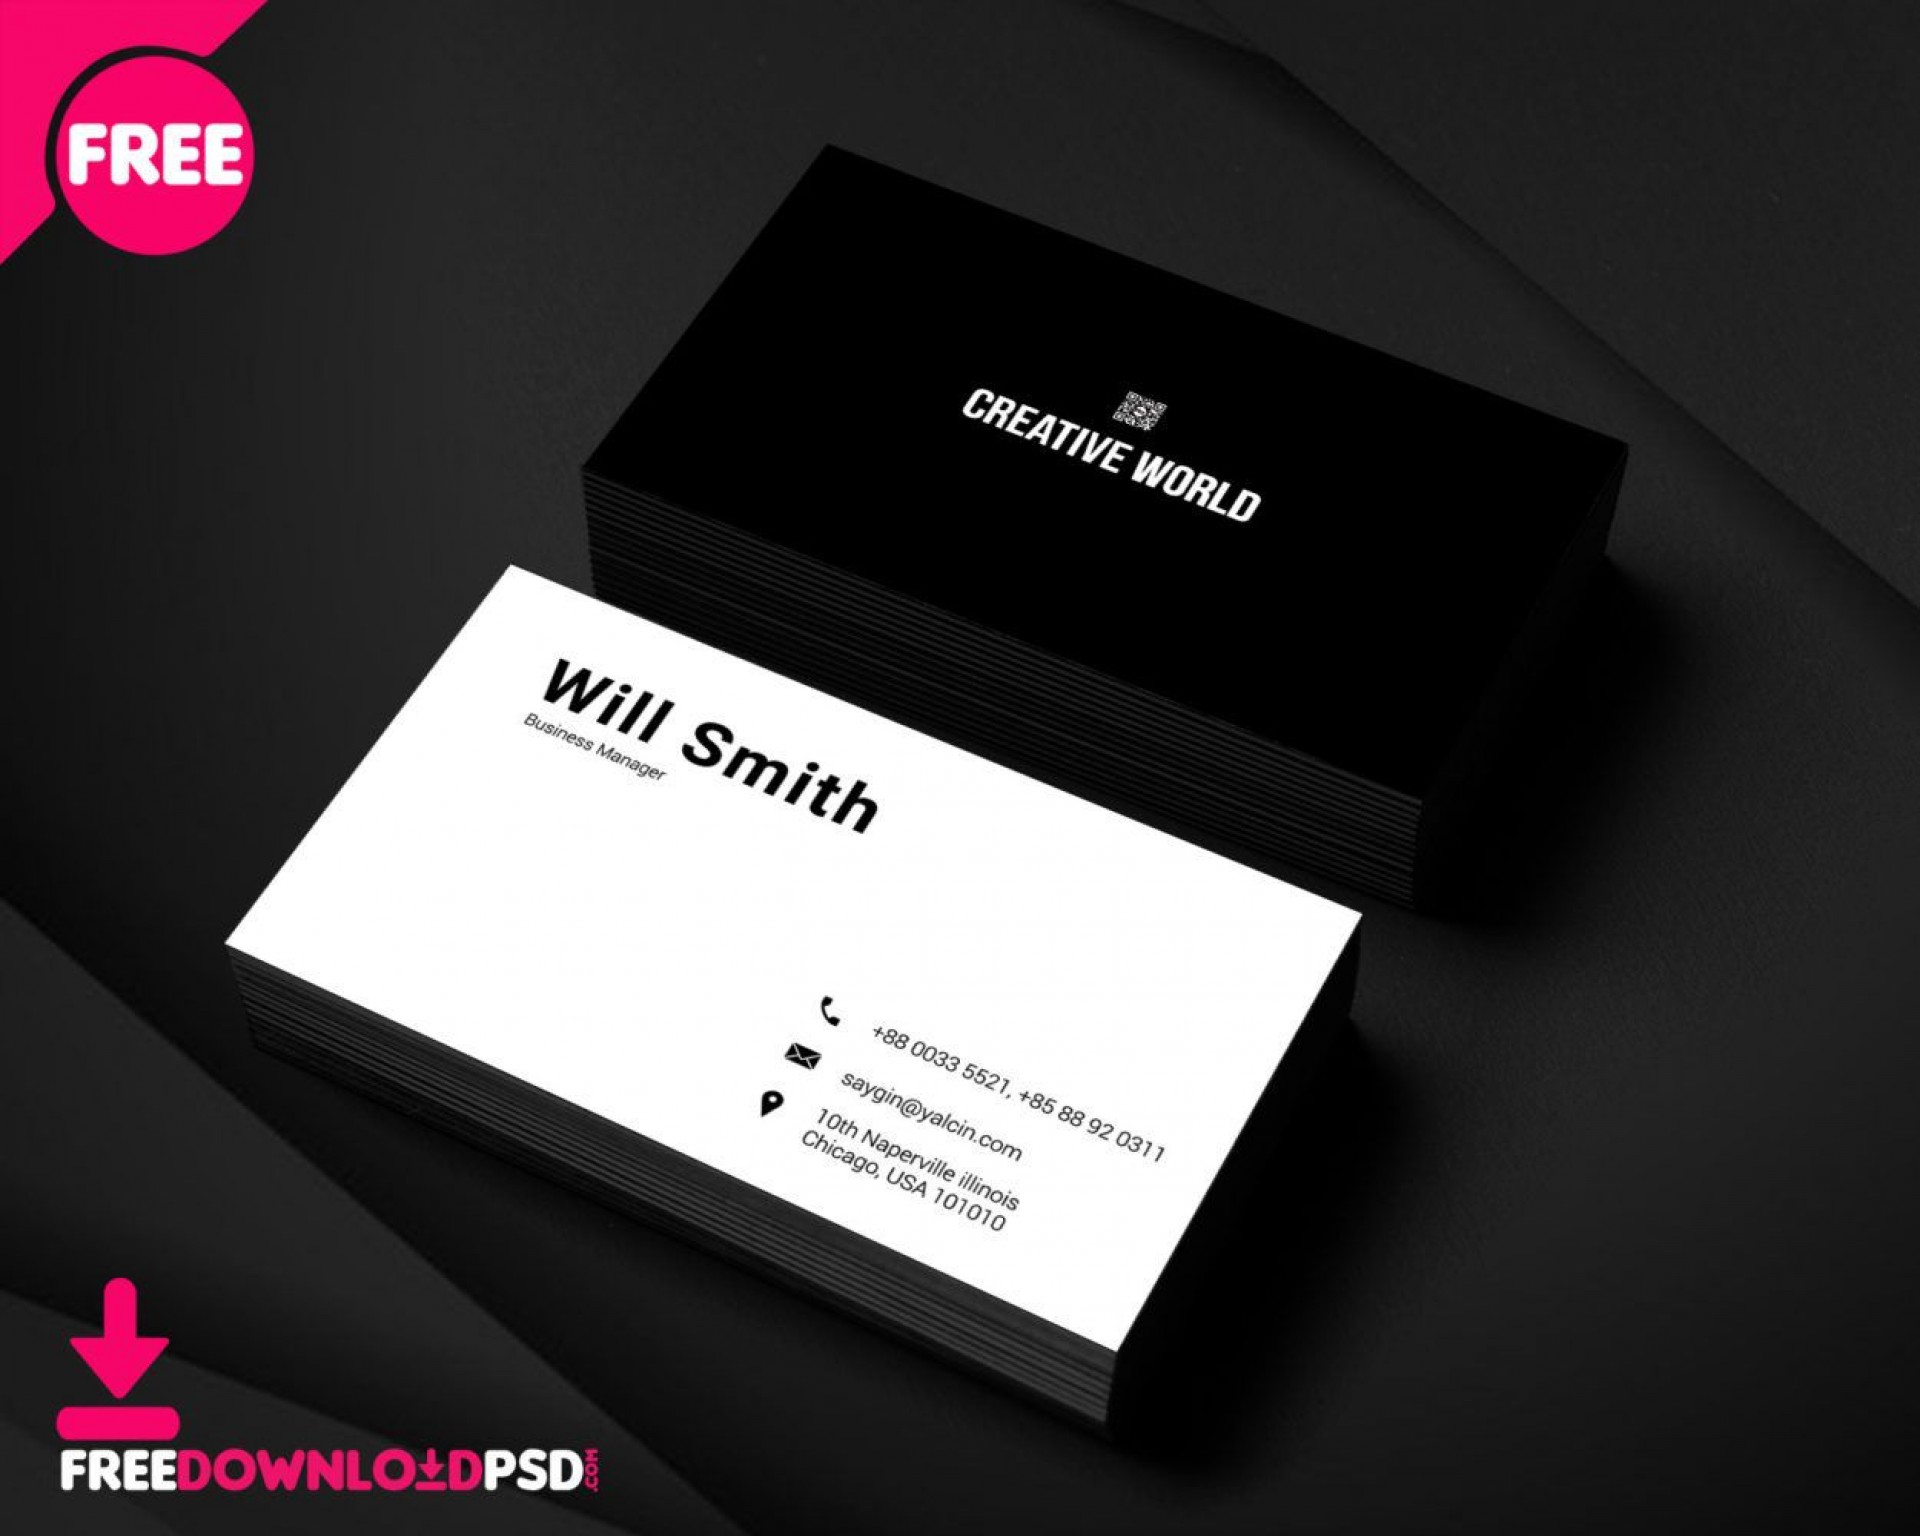 009 Imposing Minimalist Busines Card Template Psd Free Example 1920